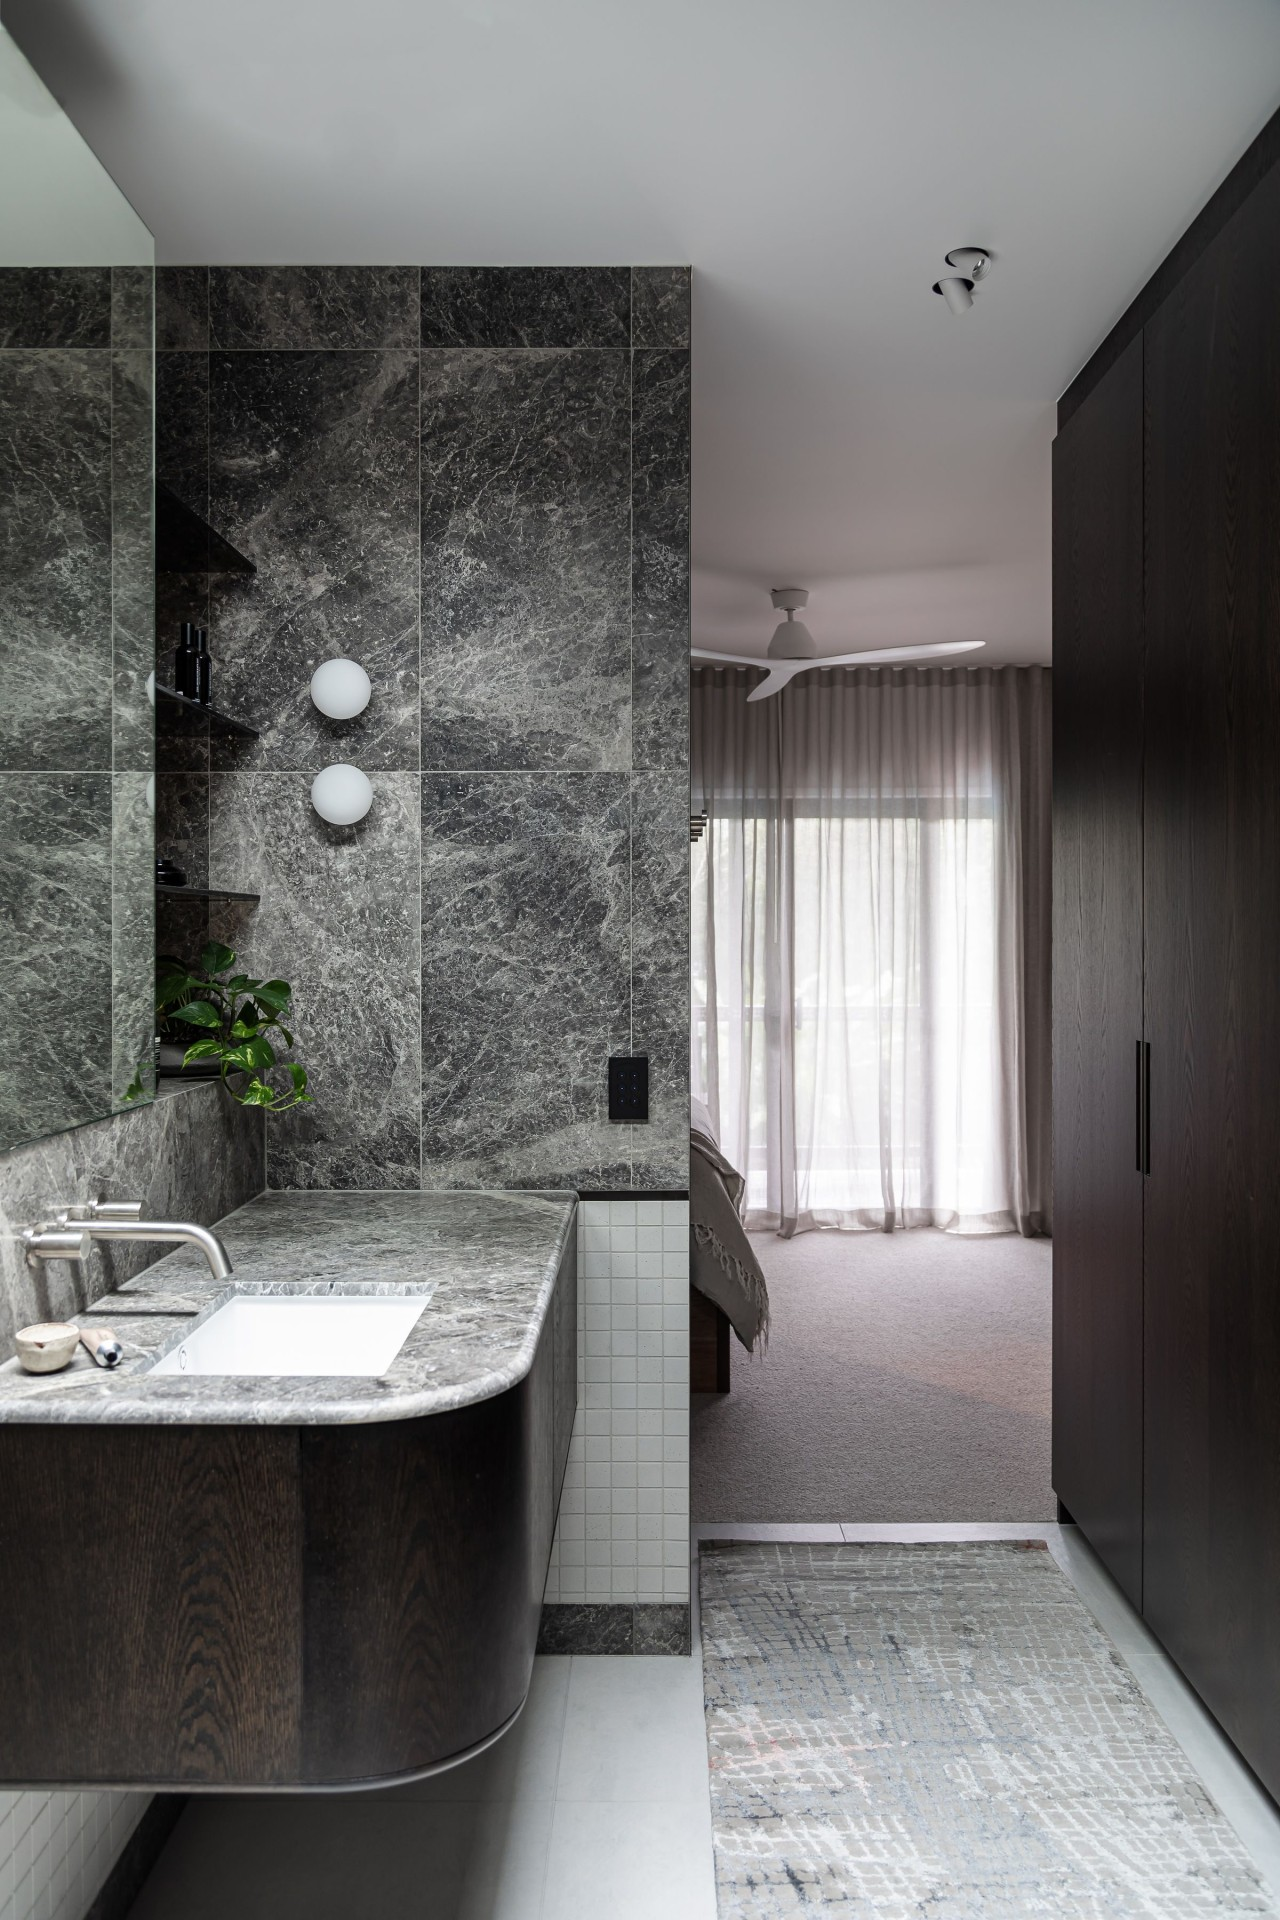 The staggered design layout allows the bathroom to